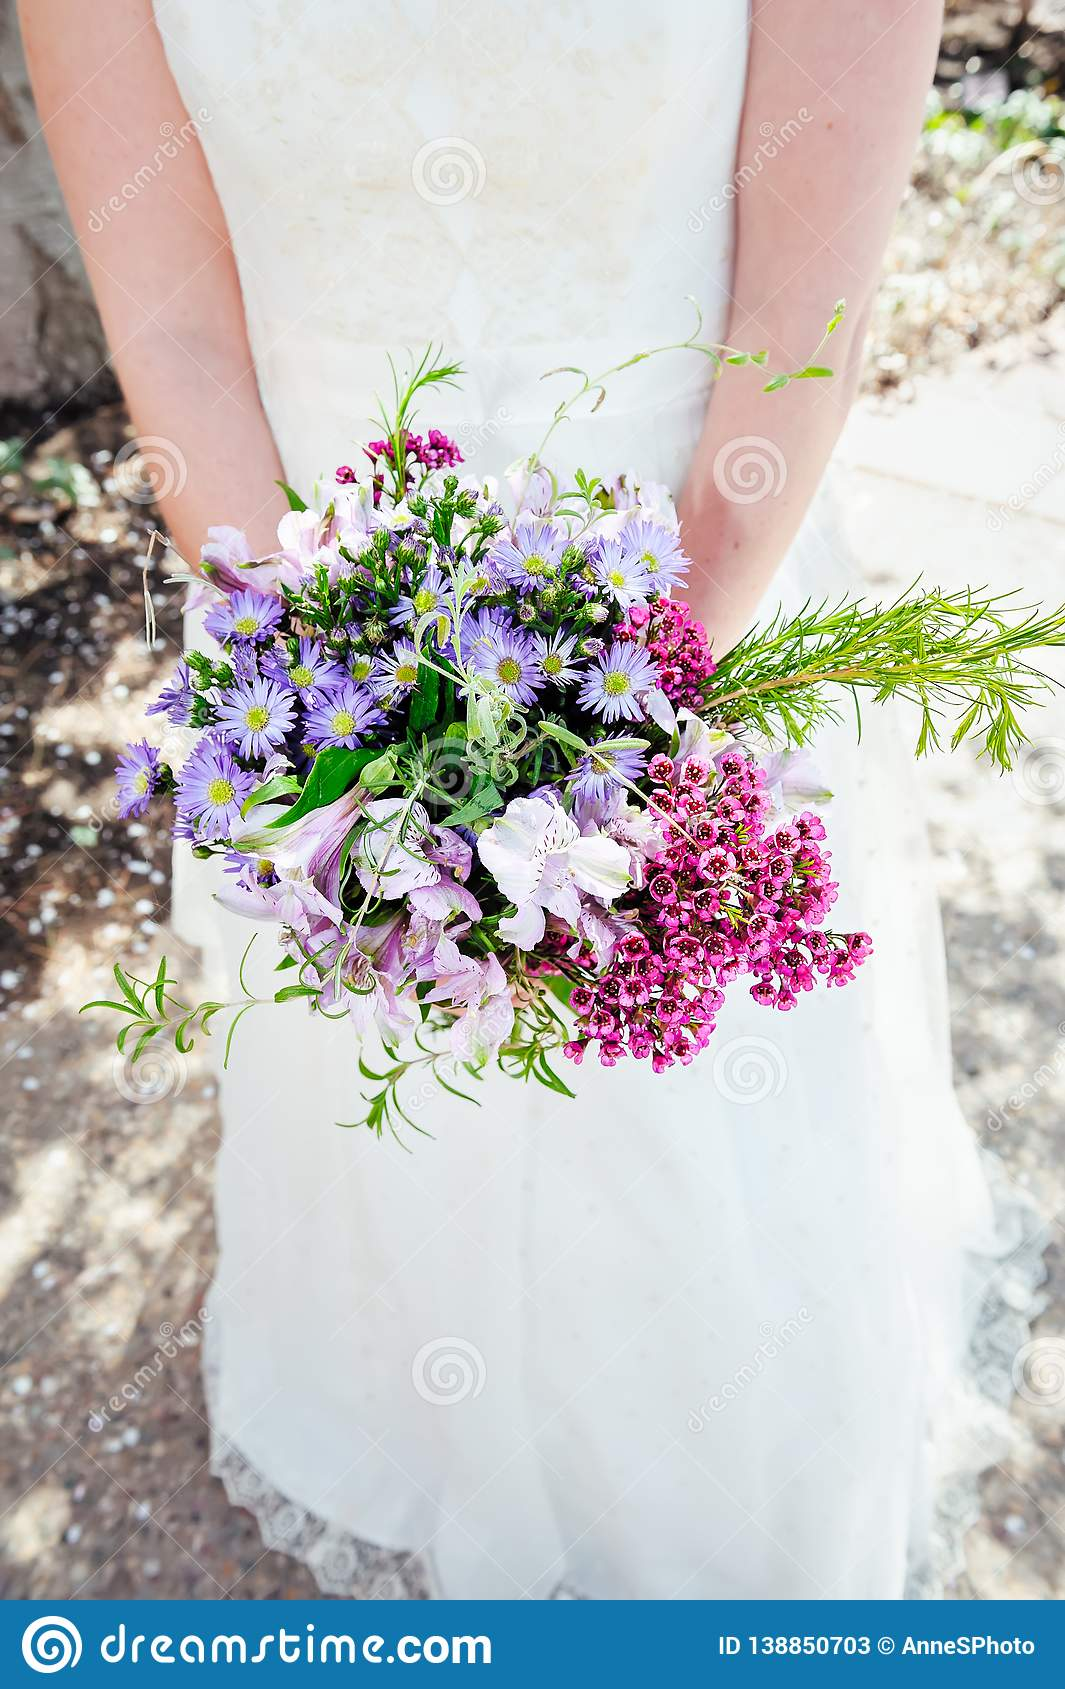 A Bride Holds A Bouquet Of Purple And Pink Wildflowers Stock Image Image Of Background Elegant 138850703